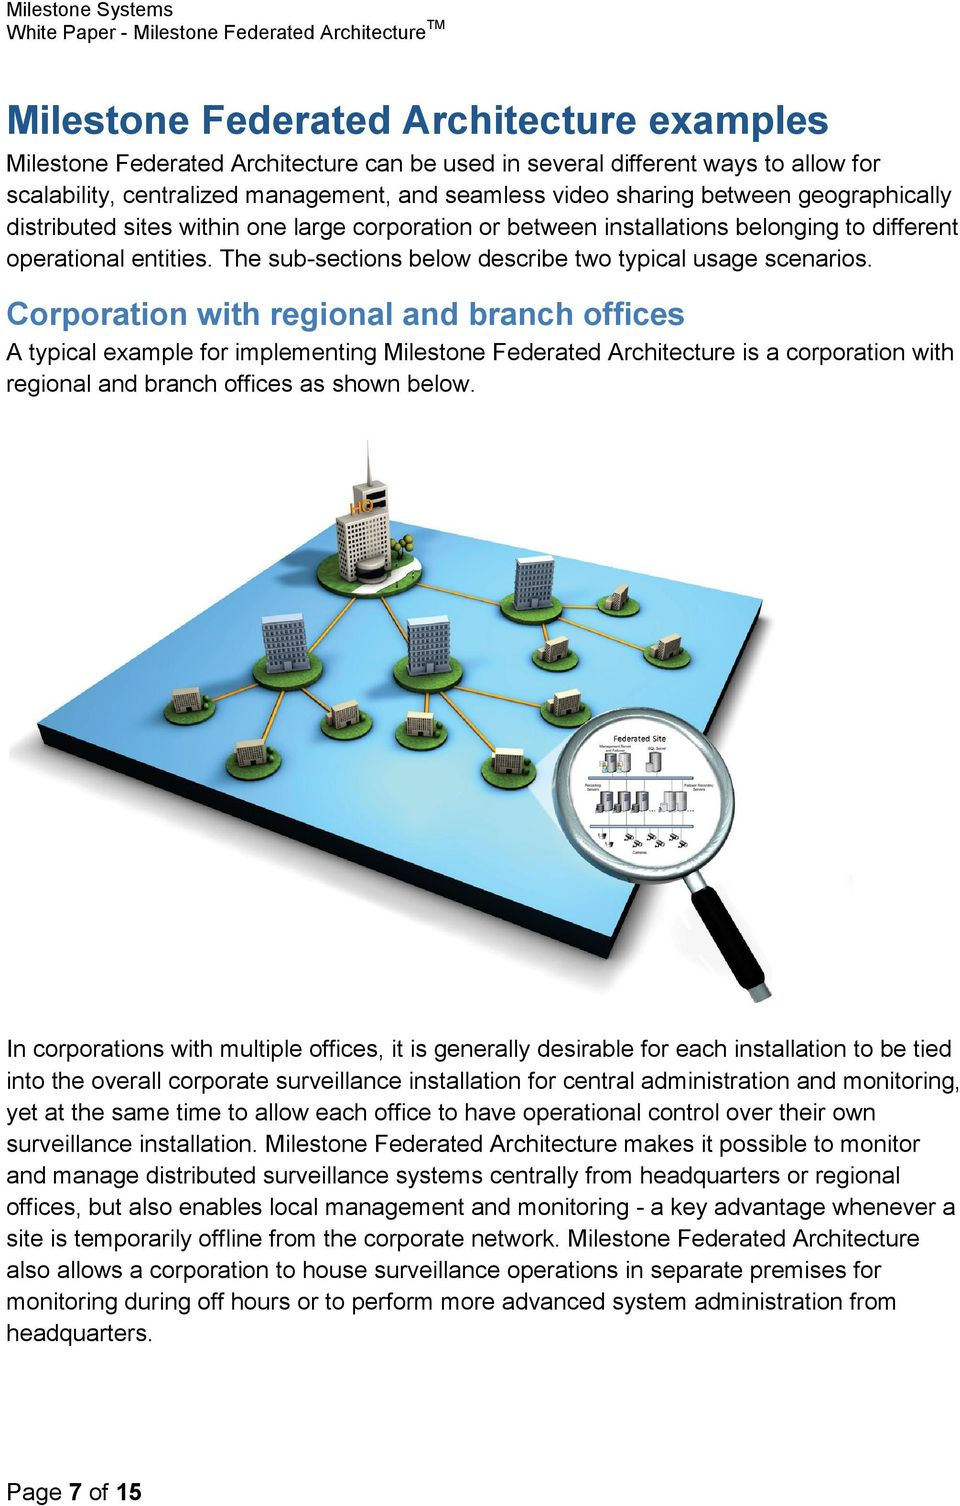 Corporation with regional and branch offices A typical example for implementing Milestone Federated Architecture is a corporation with regional and branch offices as shown below.